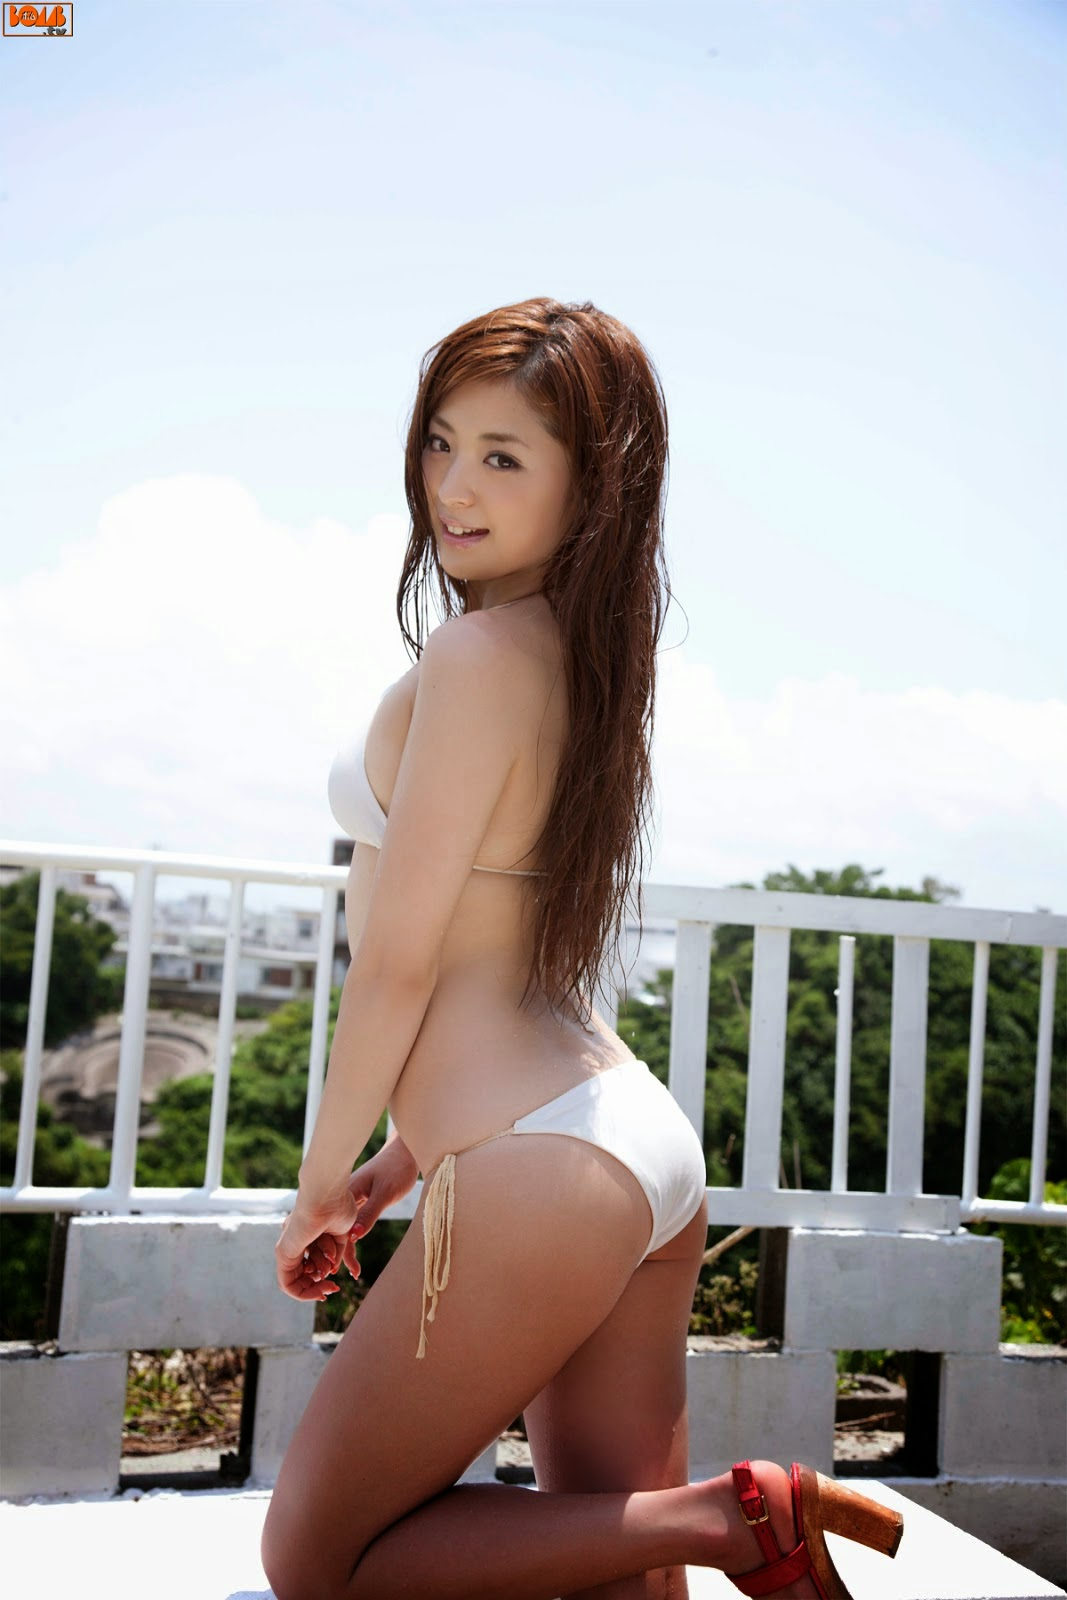 Eri Wada actor, model cum TV presenter in Japan